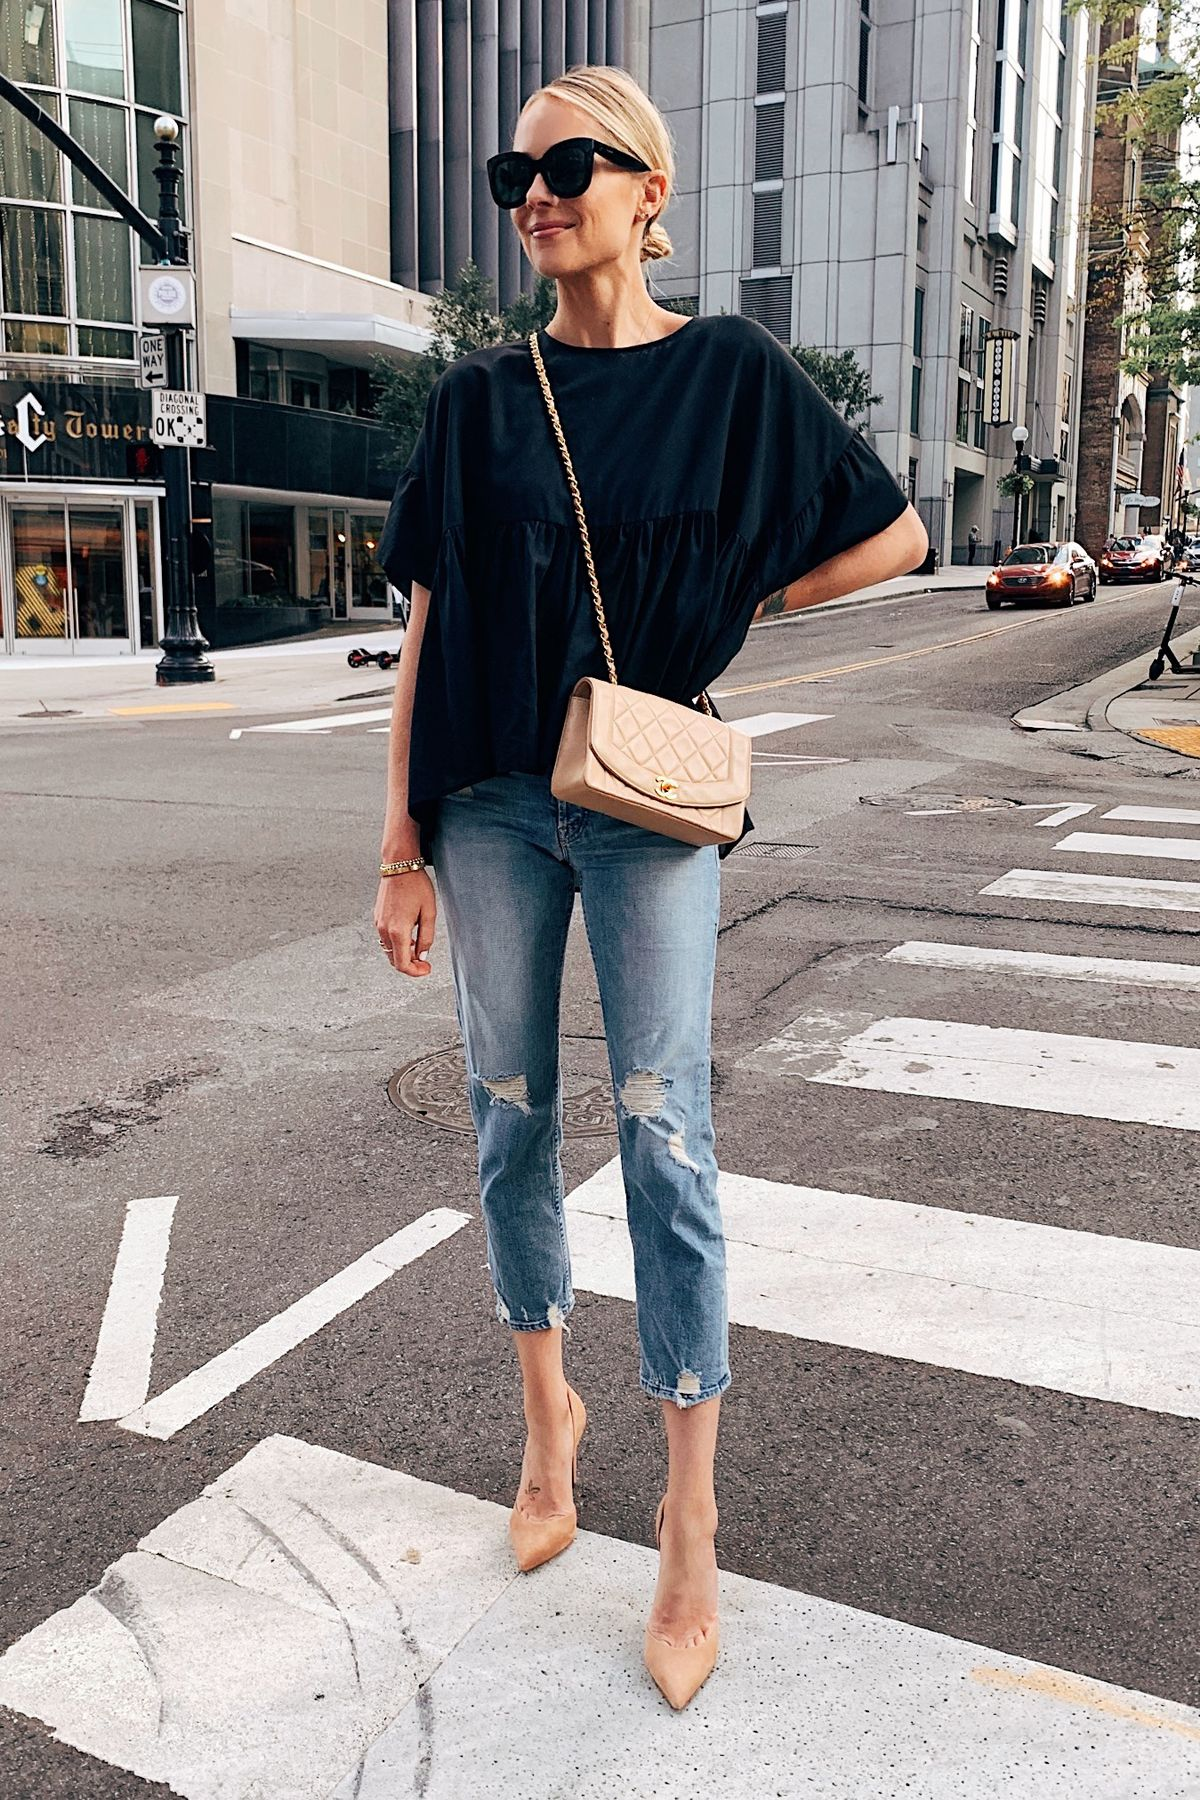 Fashion Jackson Wearing Black Top Mother Boyfriend Jeans Tan Pumps Chanel Beige …